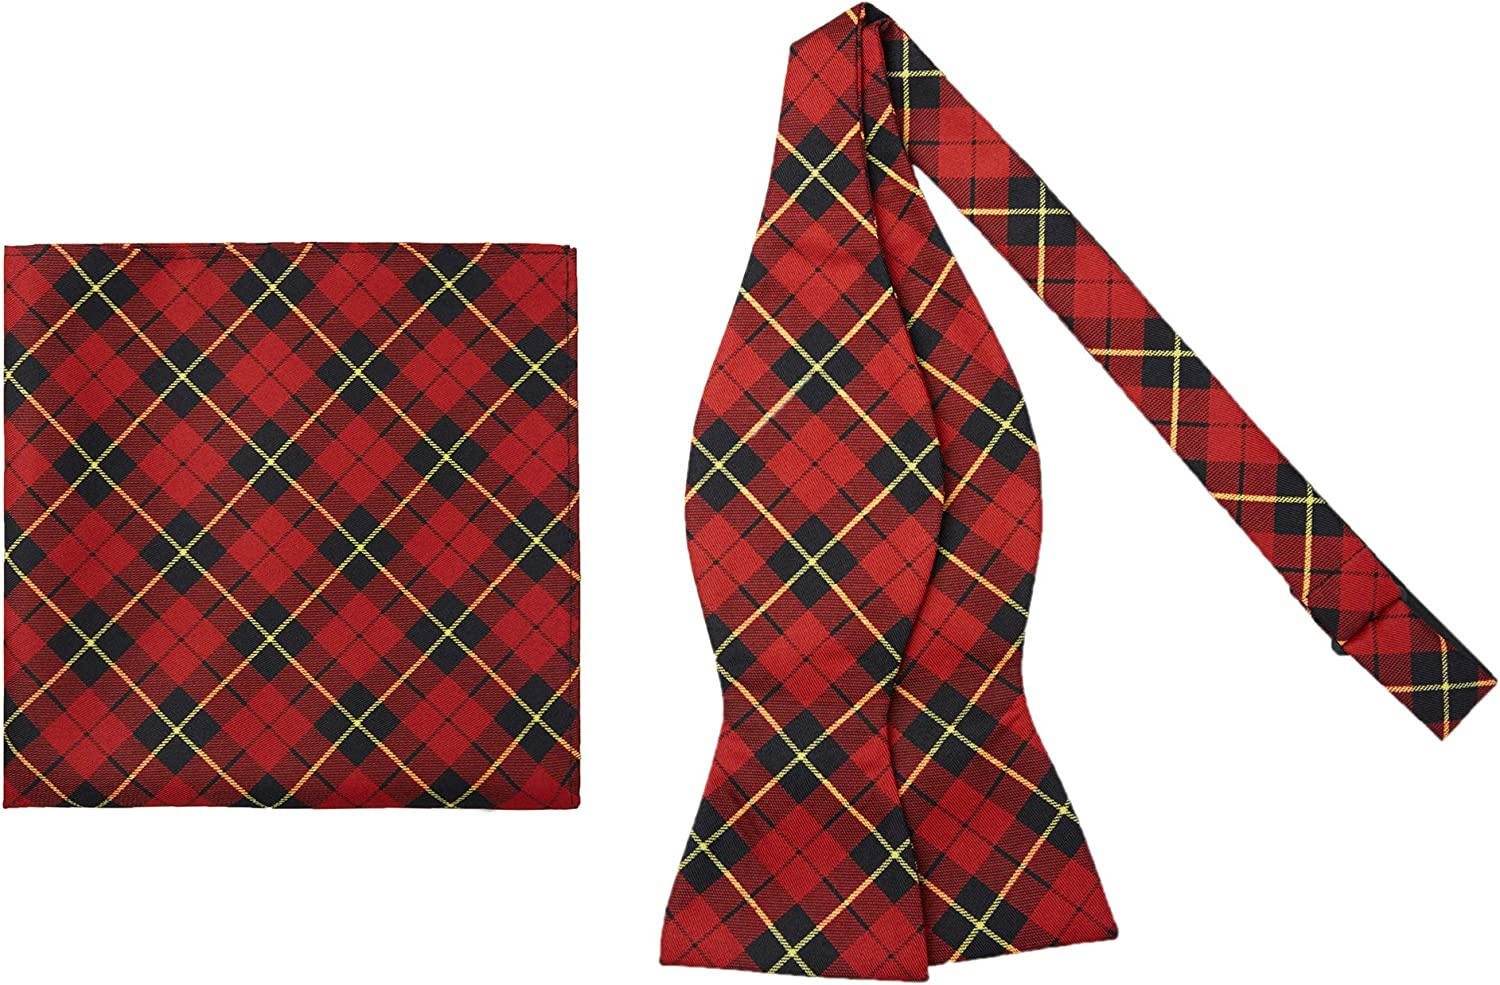 Jacob Import Alexander Royal Tartans 4 years warranty Plaid Men's and P Self-Tie Bow Tie